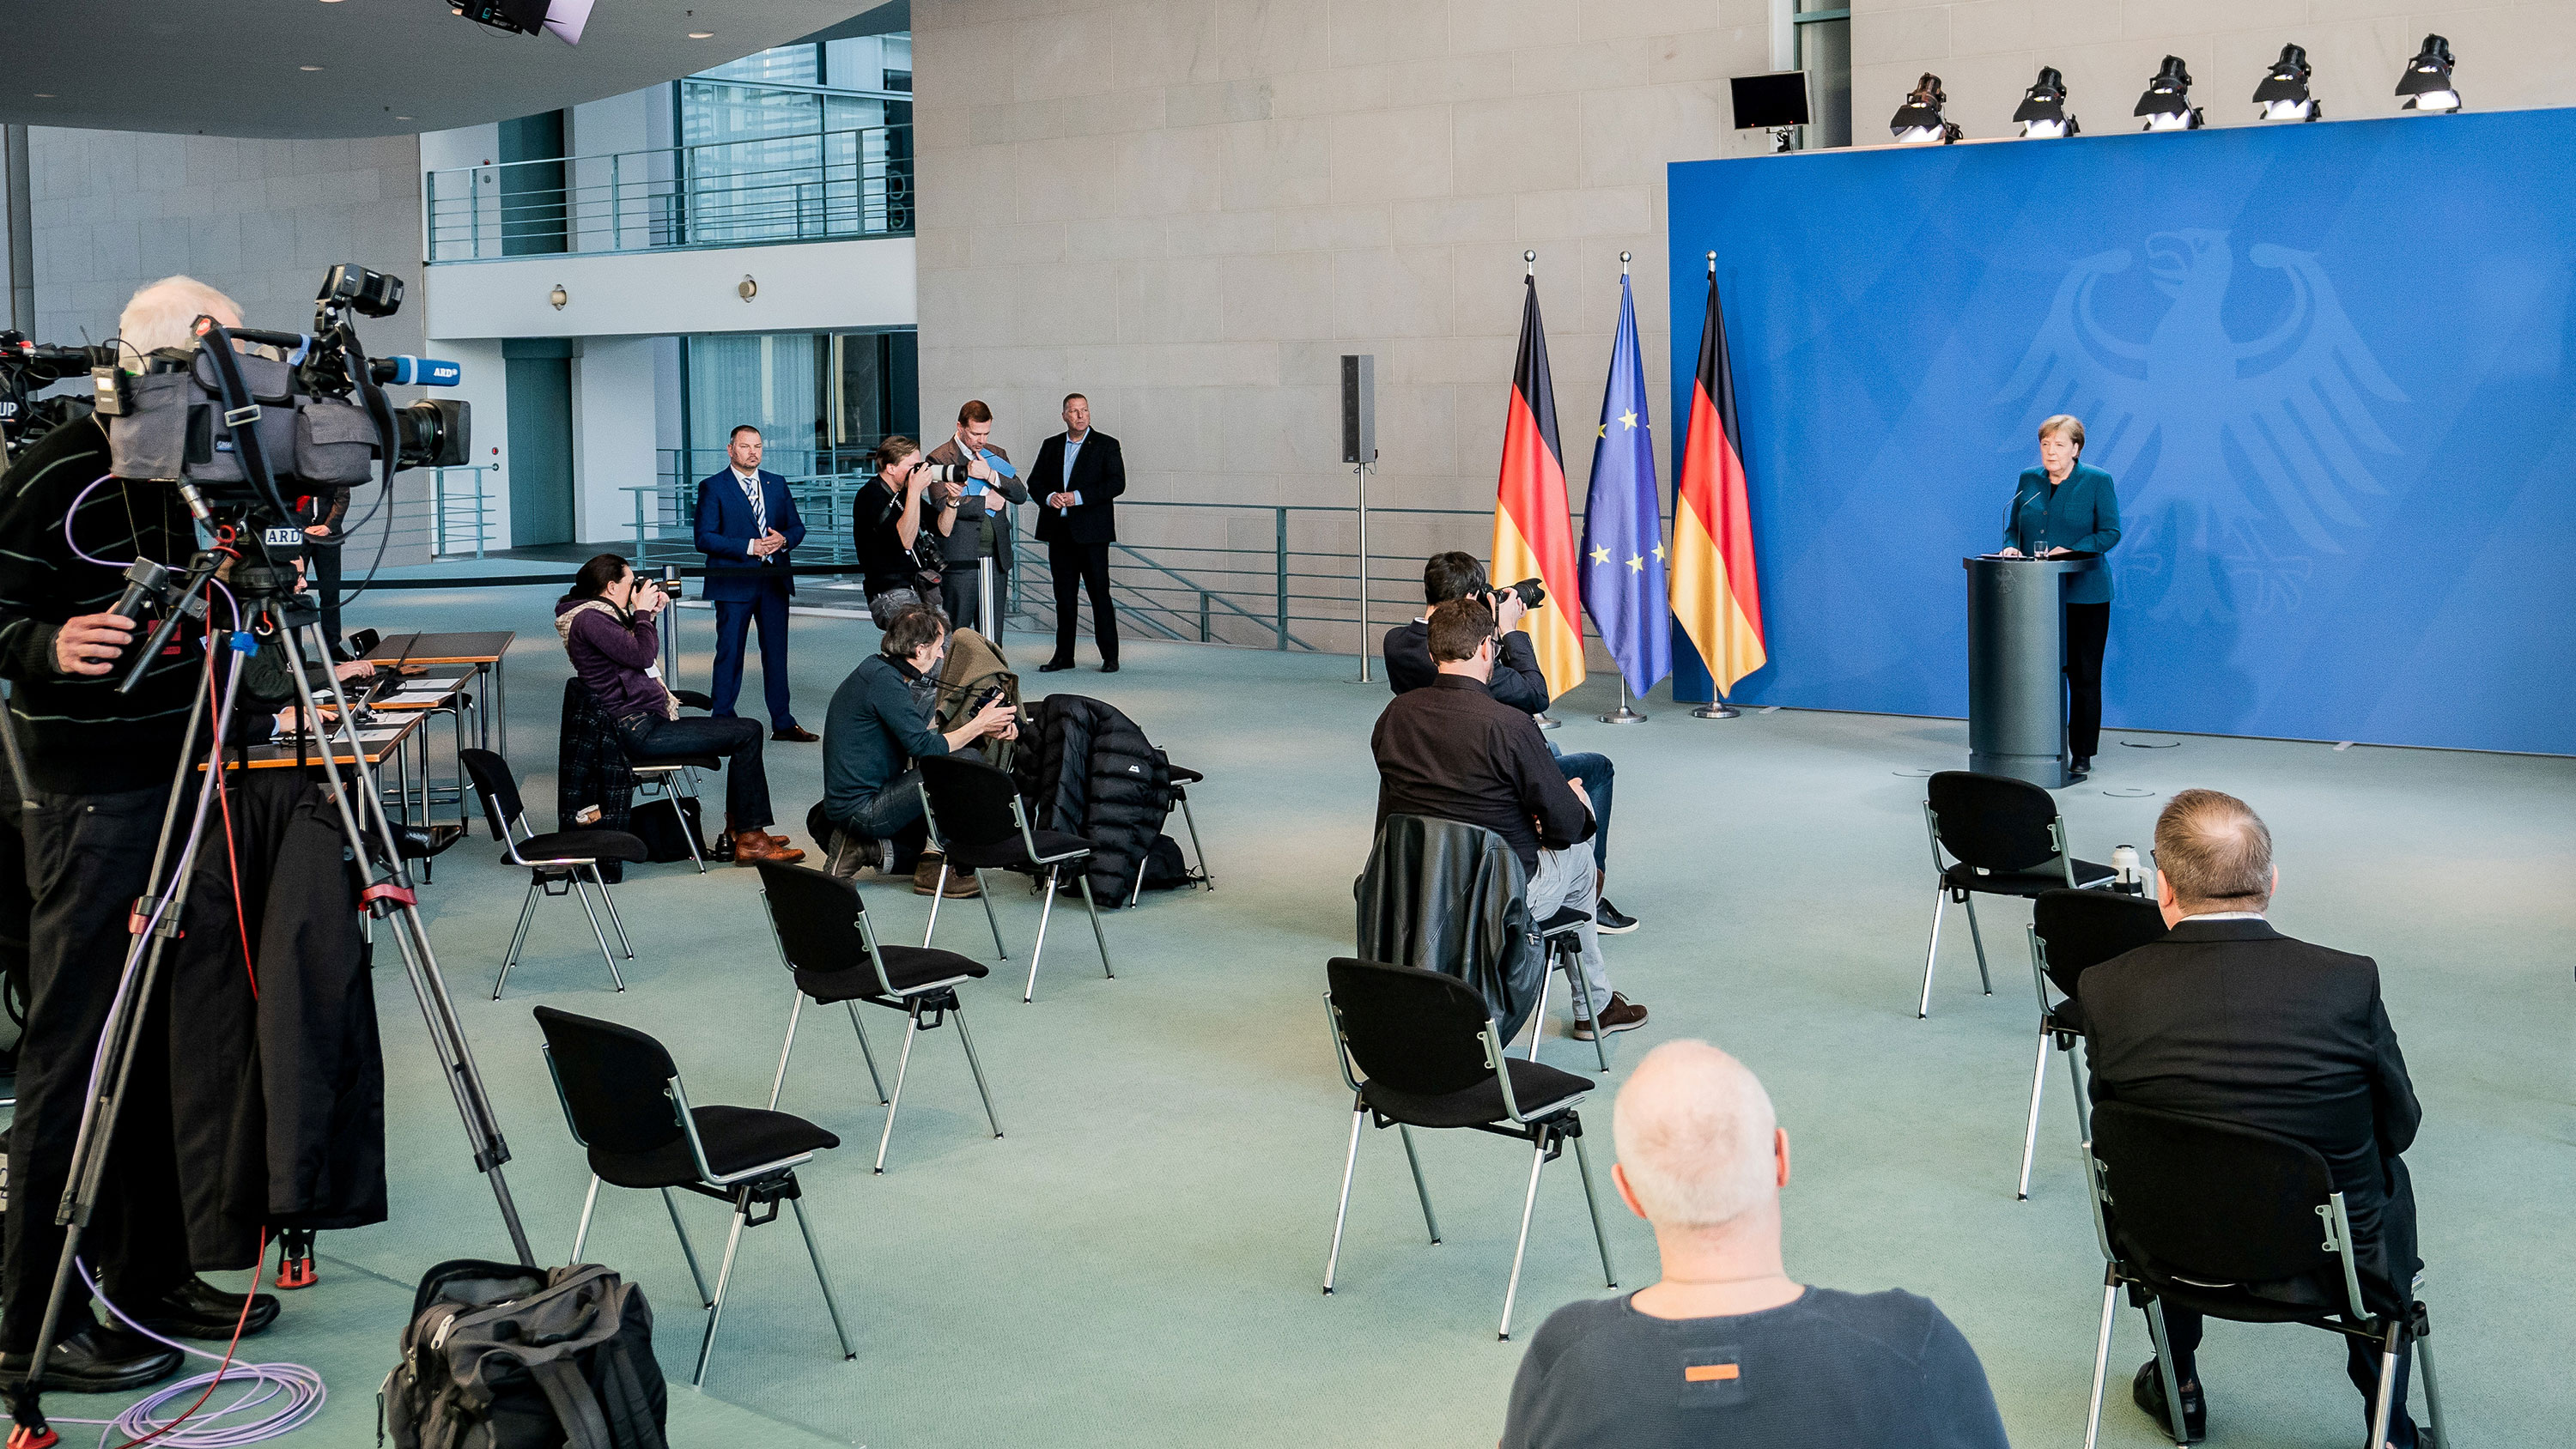 The photo shows the German Chancellor speaking to a room sparsely populated with reporters practicing social distancing.